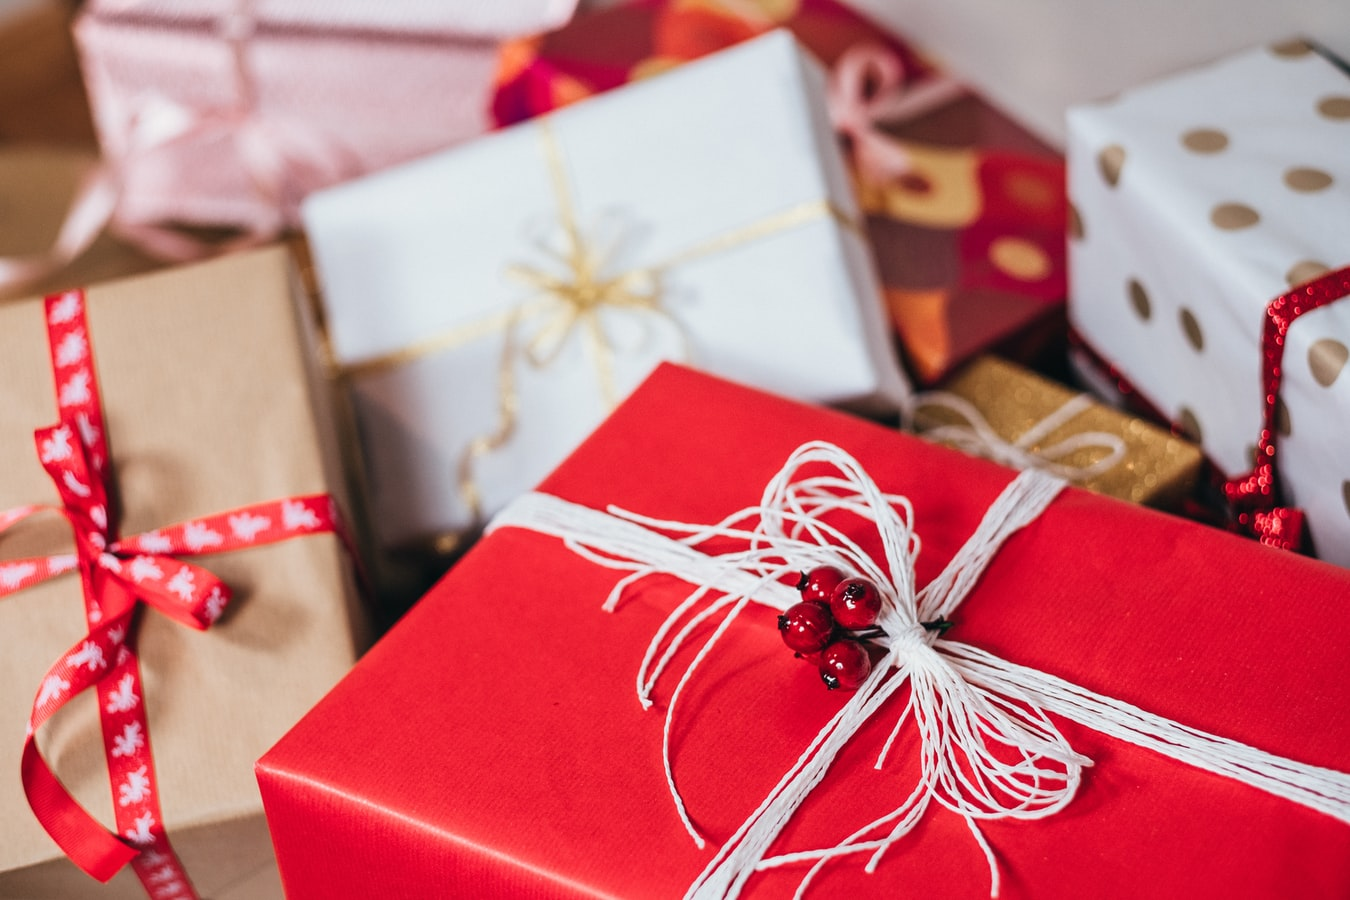 Gift Ideas For Those Who Are Hard to Buy For | Christmas 2020 Gift Guide